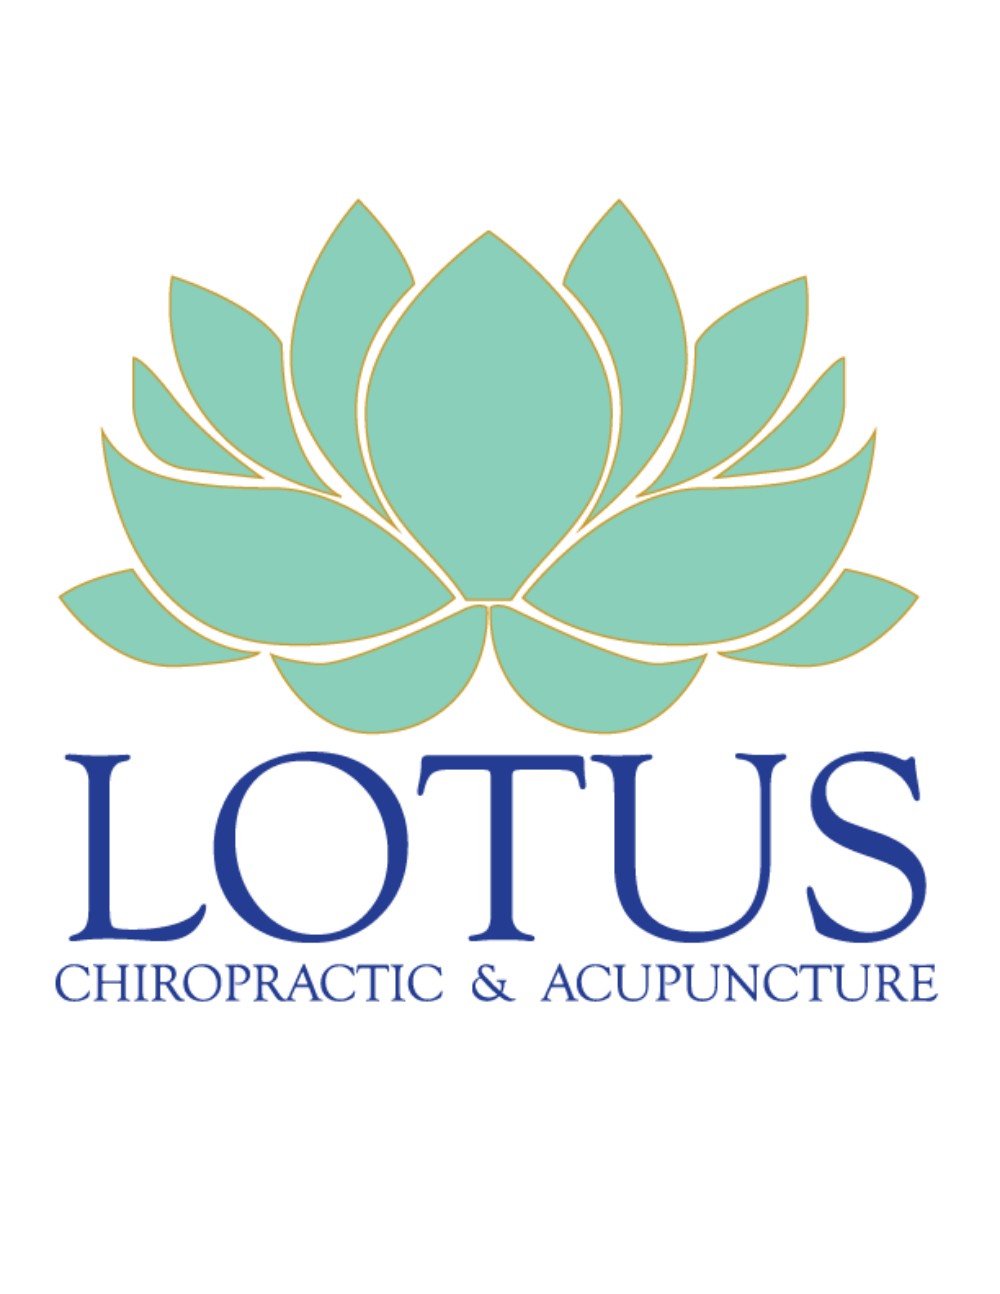 Lotus Chiropractic & Acupuncture